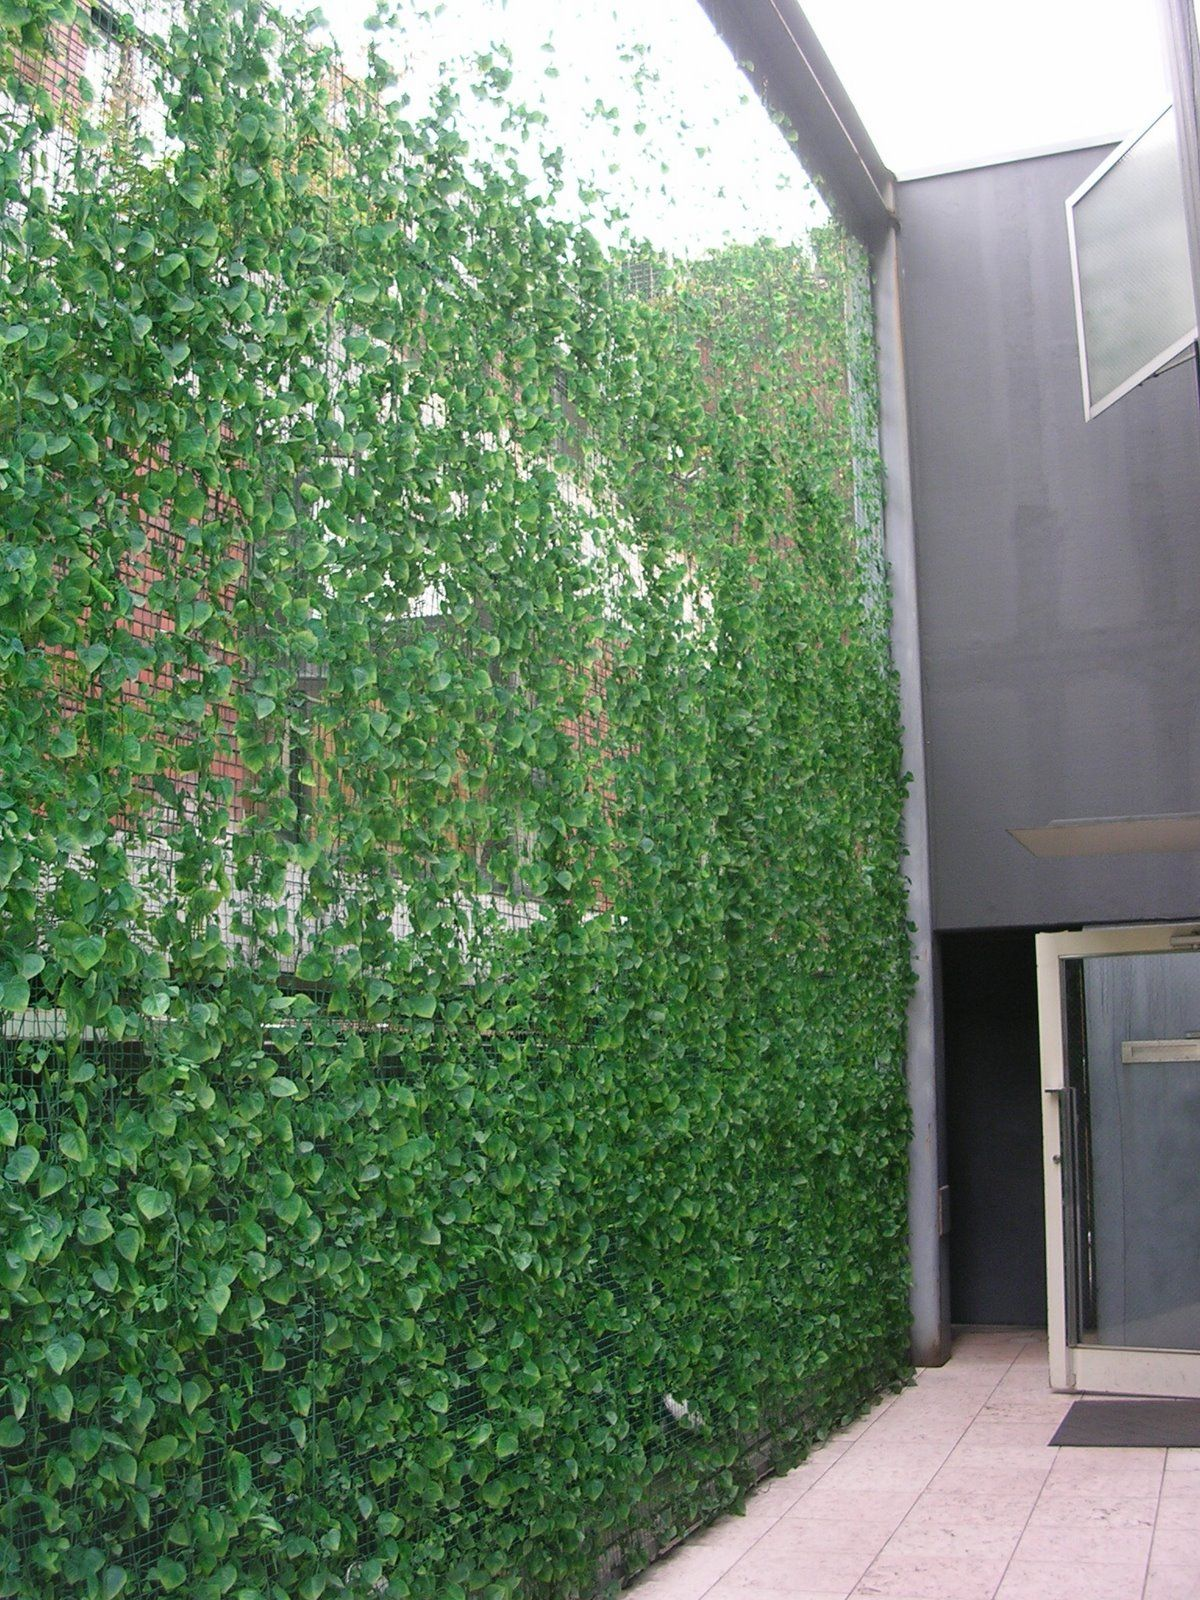 Design Vertical Garden for Privacy Fence